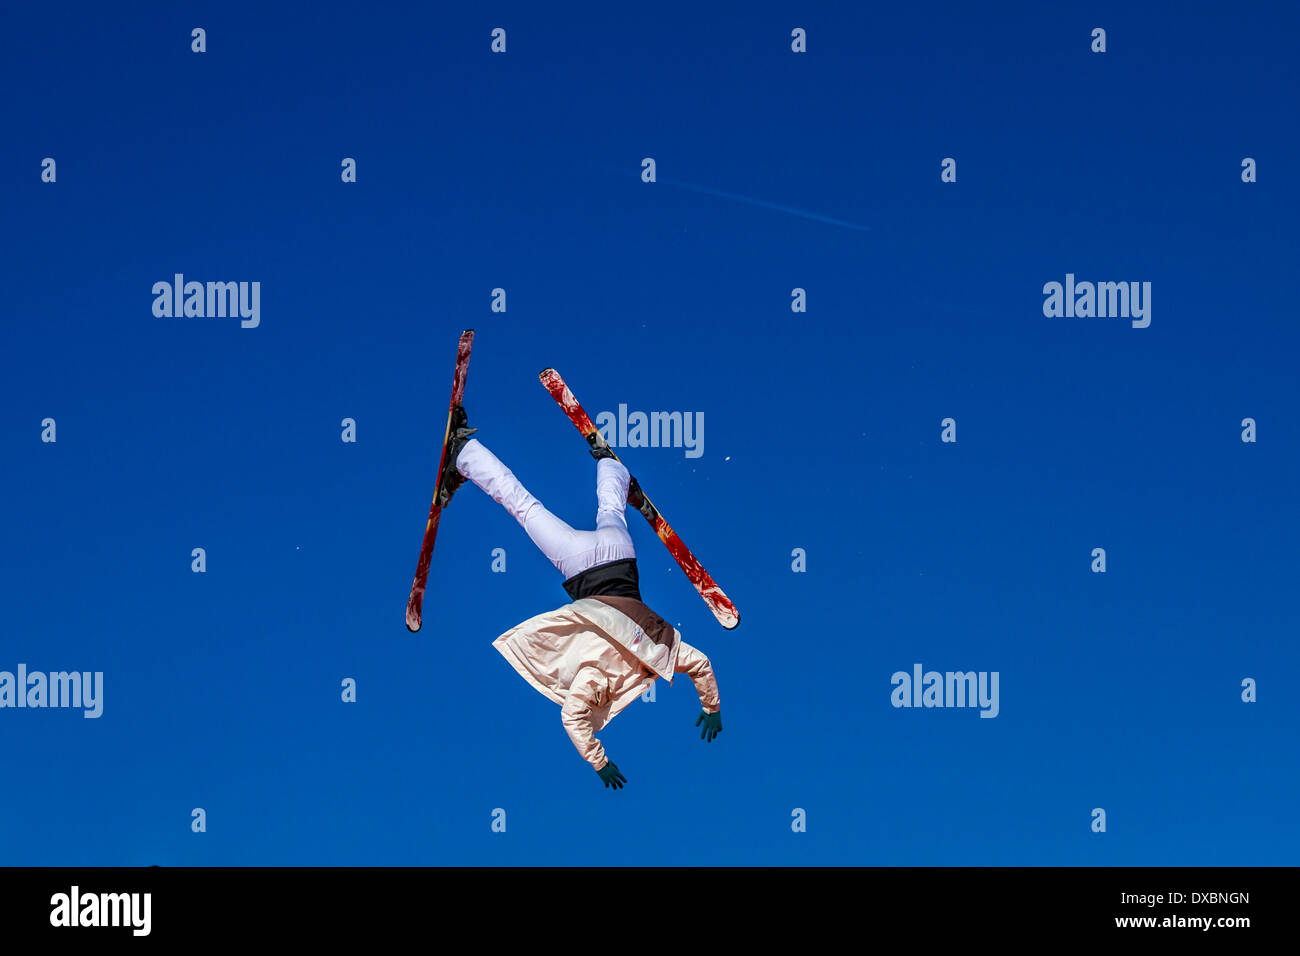 Skier upside down and out of control against a blue sky - Stock Image